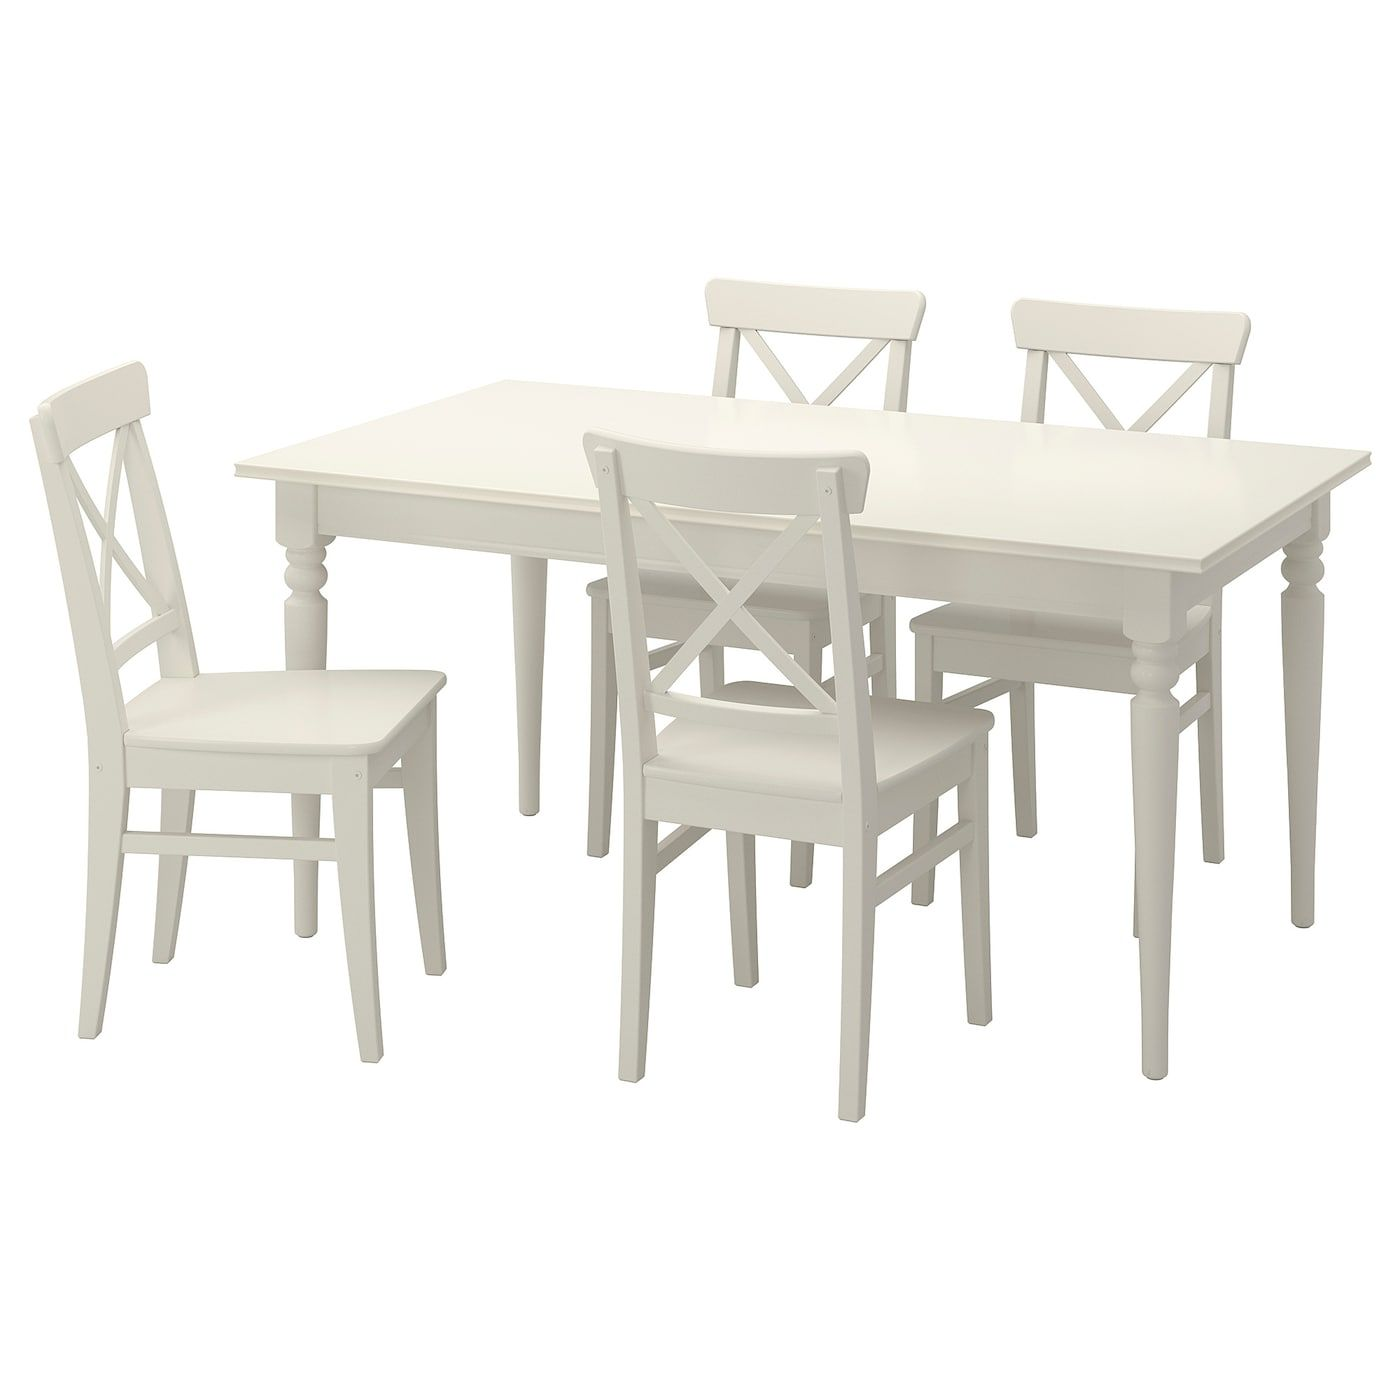 Ikea Ingatorp Ingolf White Table And 4 Chairs In 2020 Dining